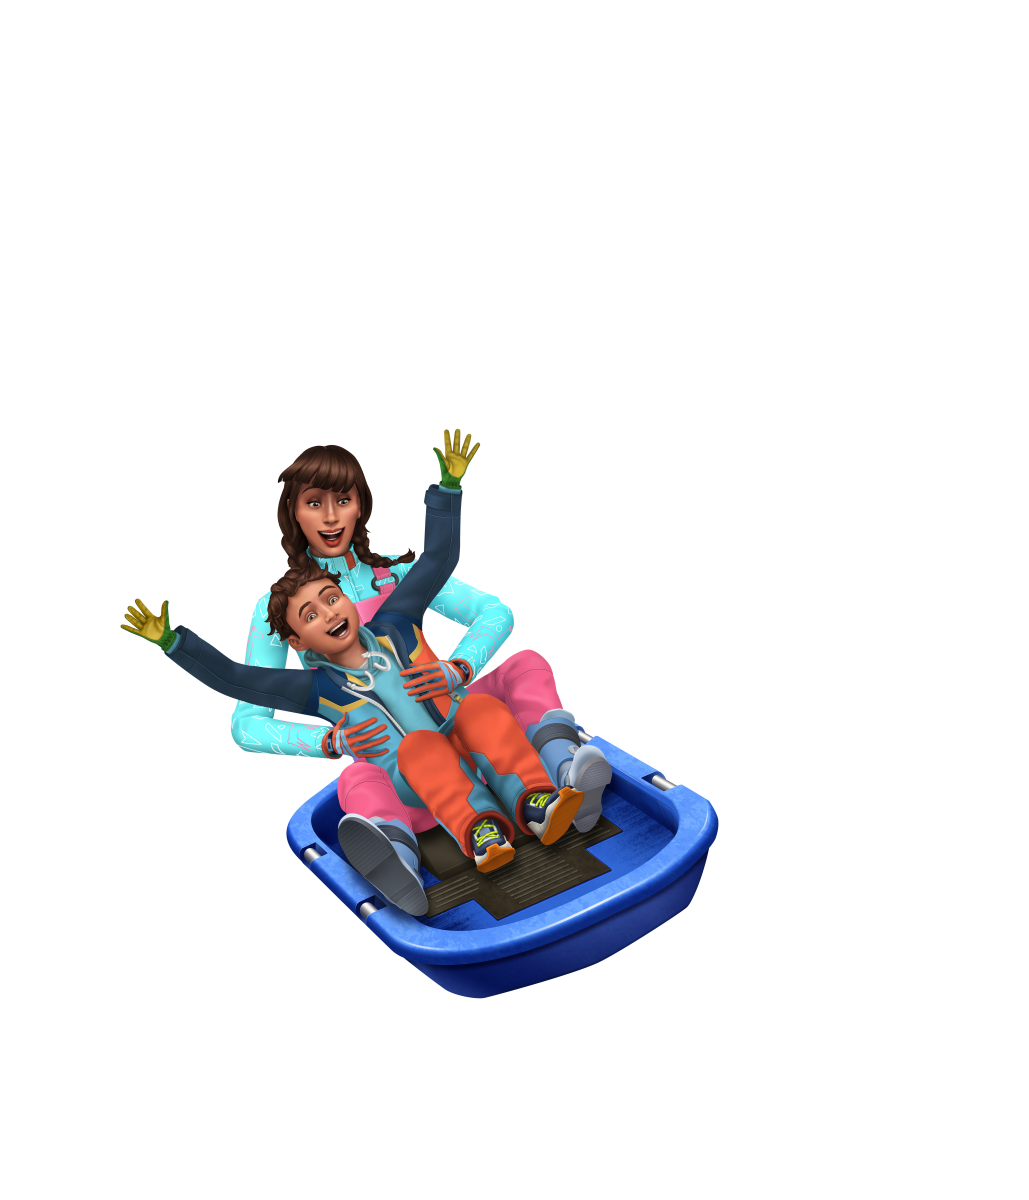 SIMS4_EP10_Snowy-Escape_Sledders_RGB.png